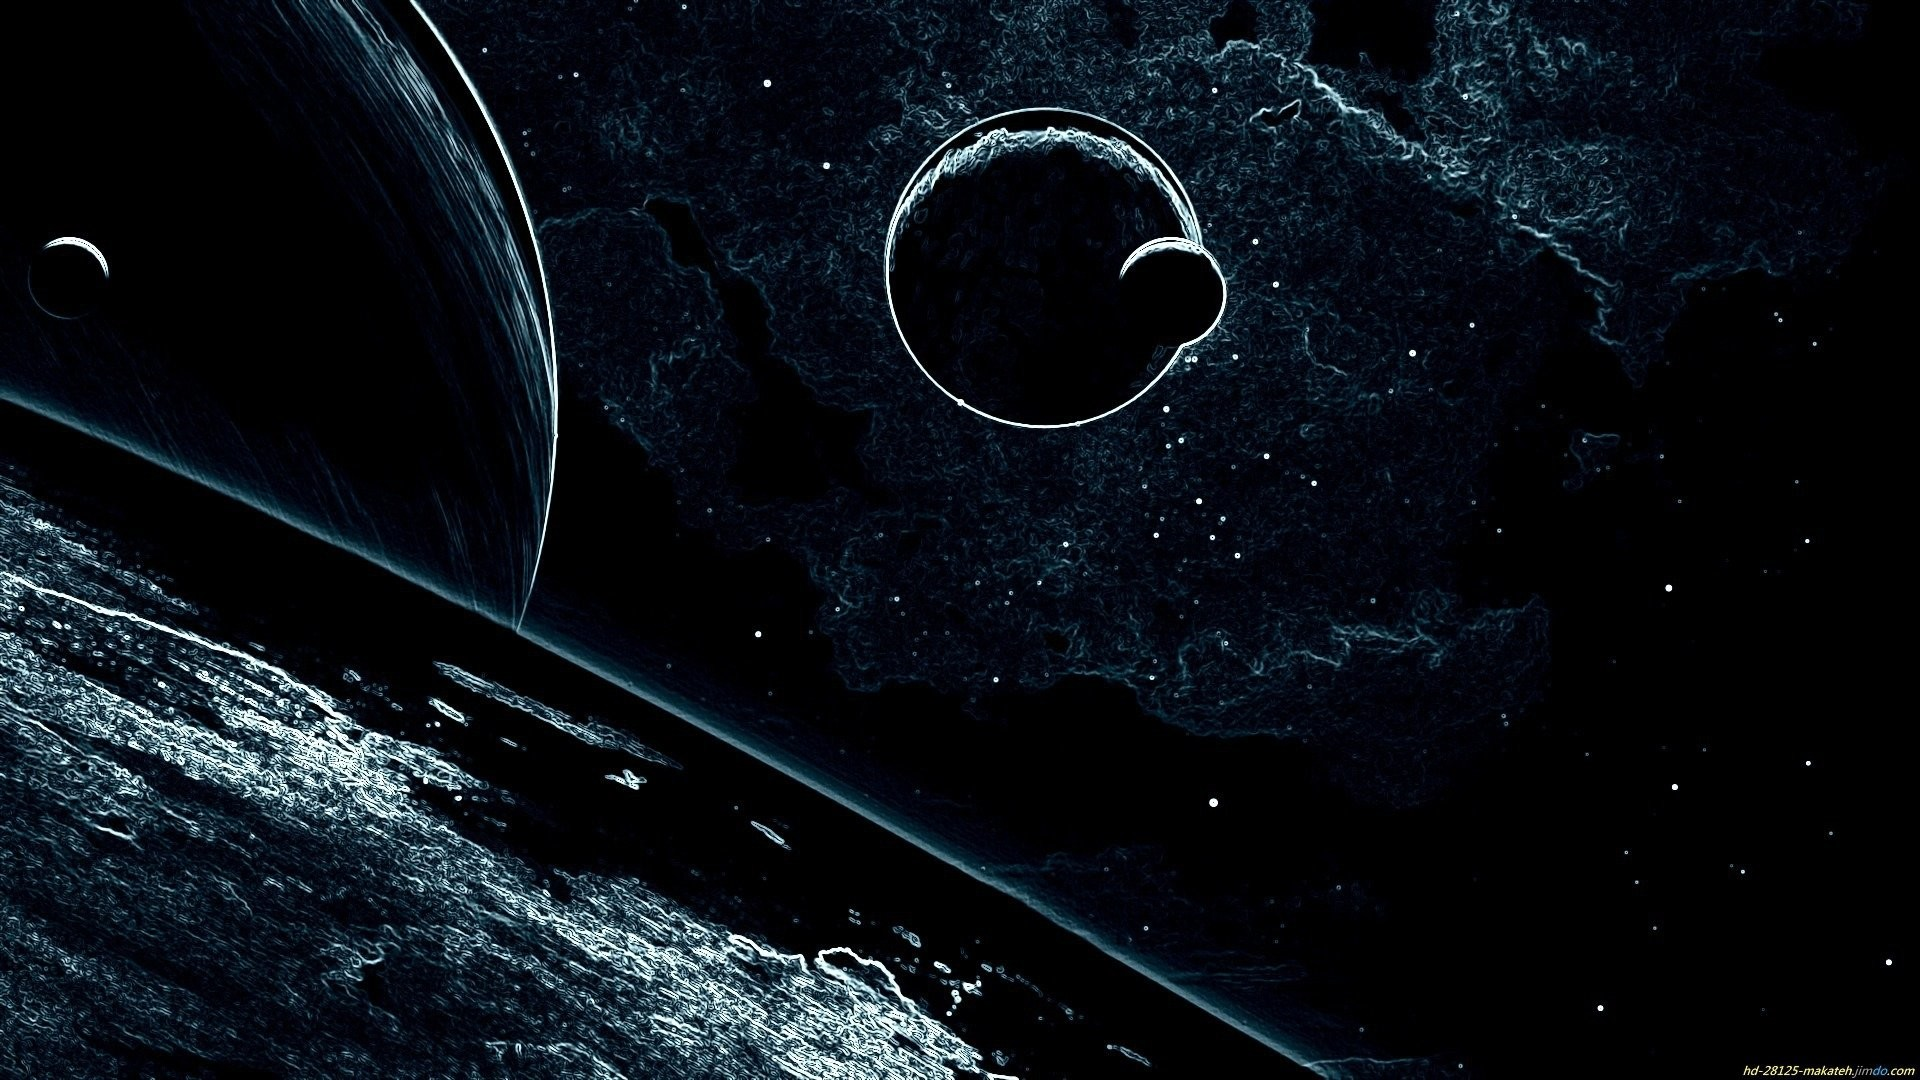 Sci Fi – Abstract Planet Moon Sci Fi Space Wallpaper